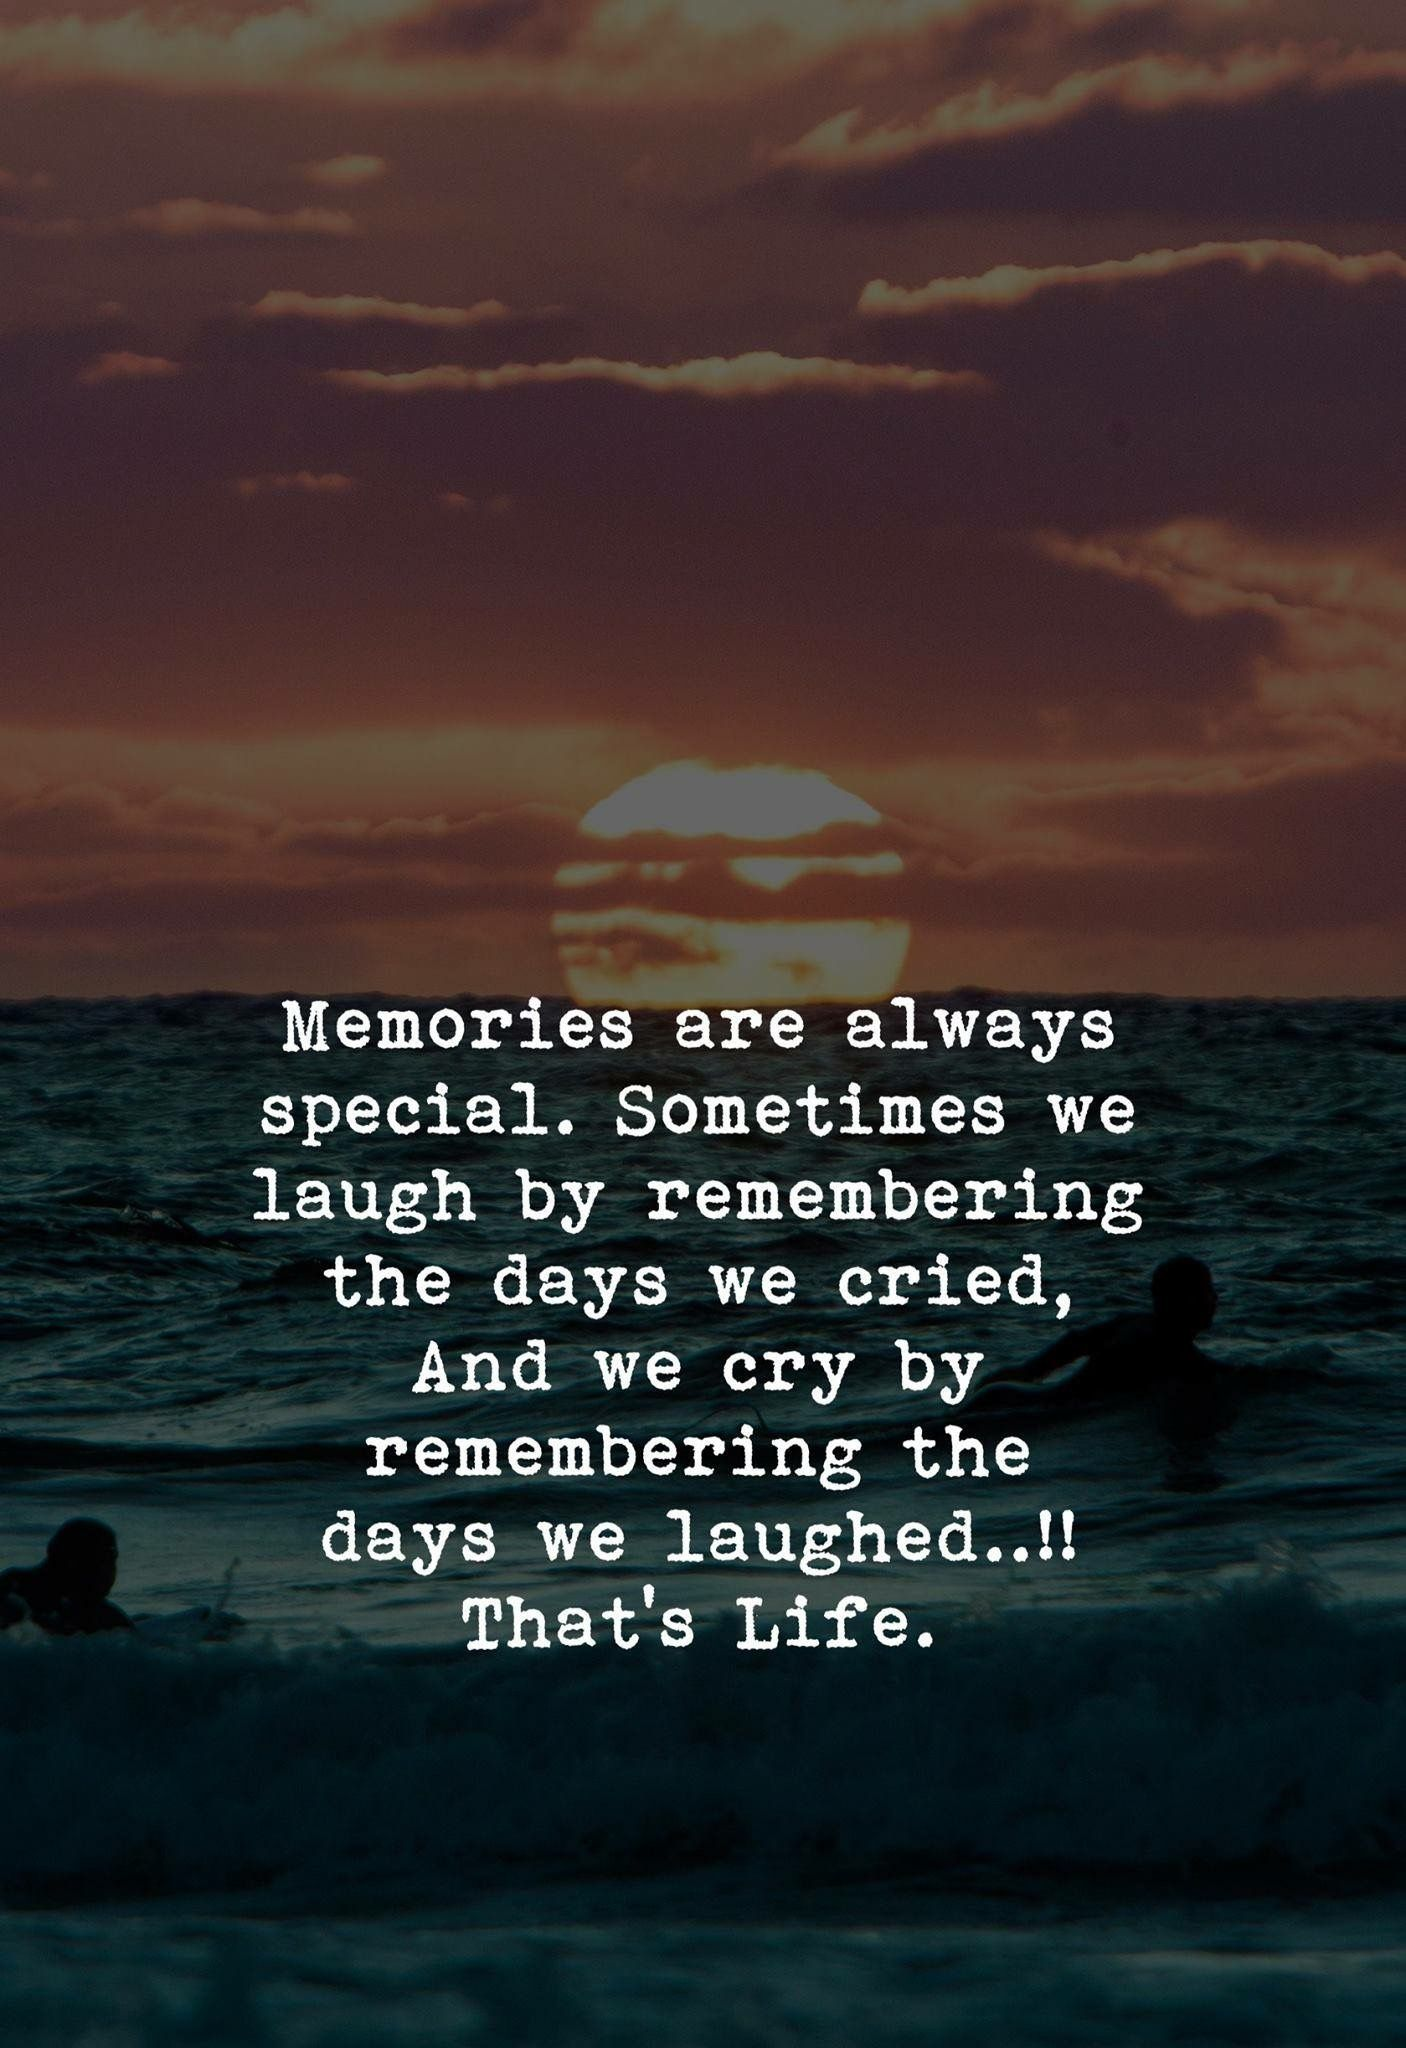 Pin By Wordland On W O R D S Life Quotes Memories Quotes Be